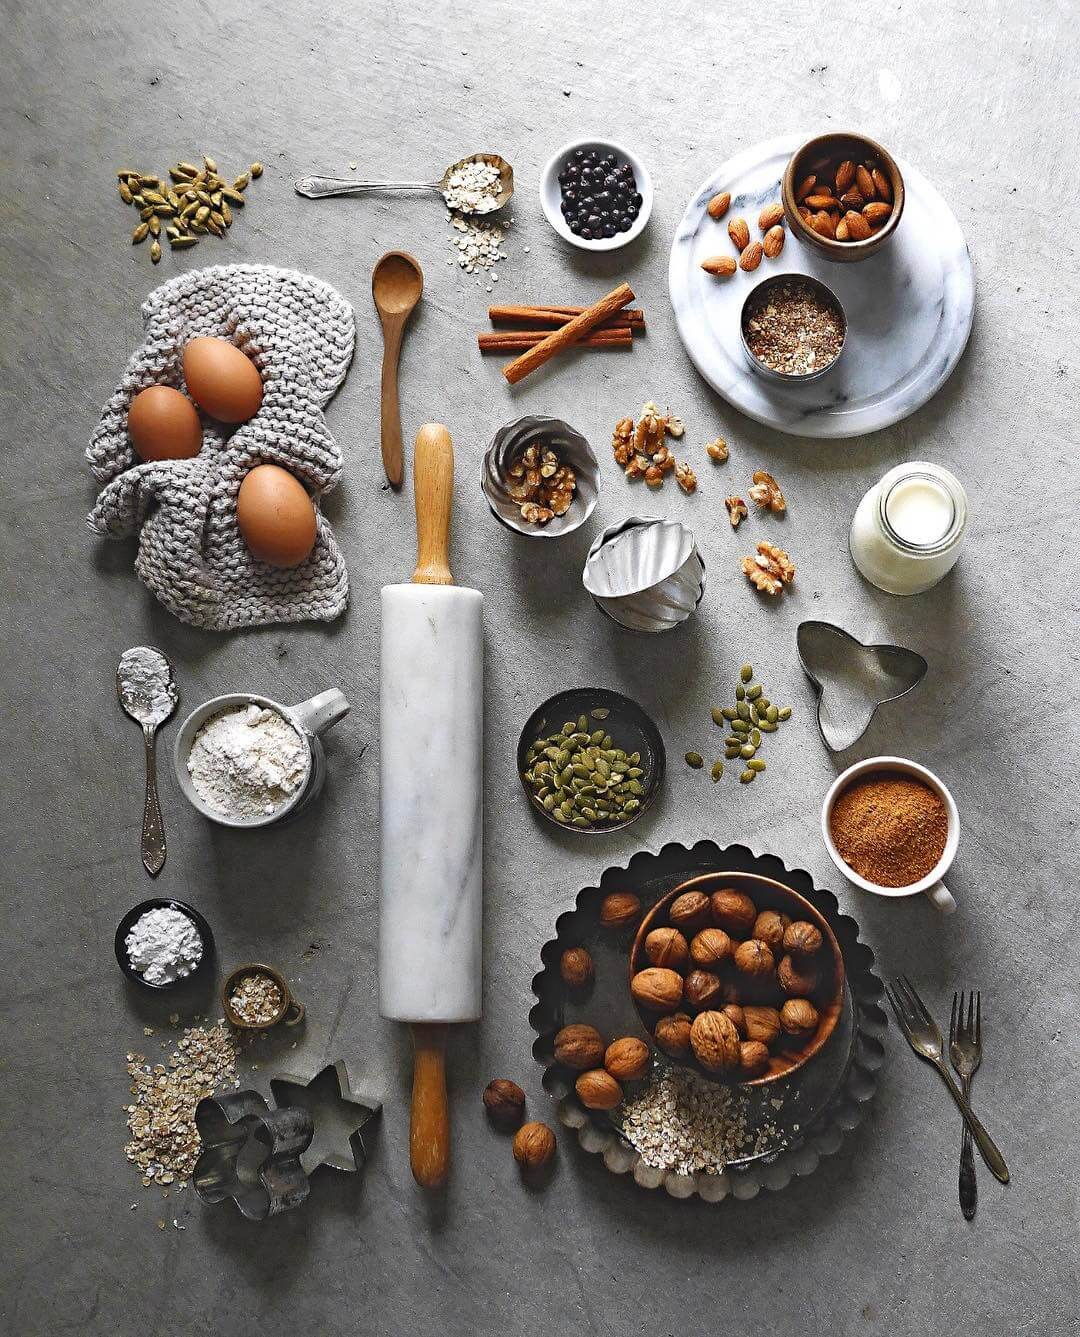 flatlay arrangement with cooking utensils, ingredients and spices